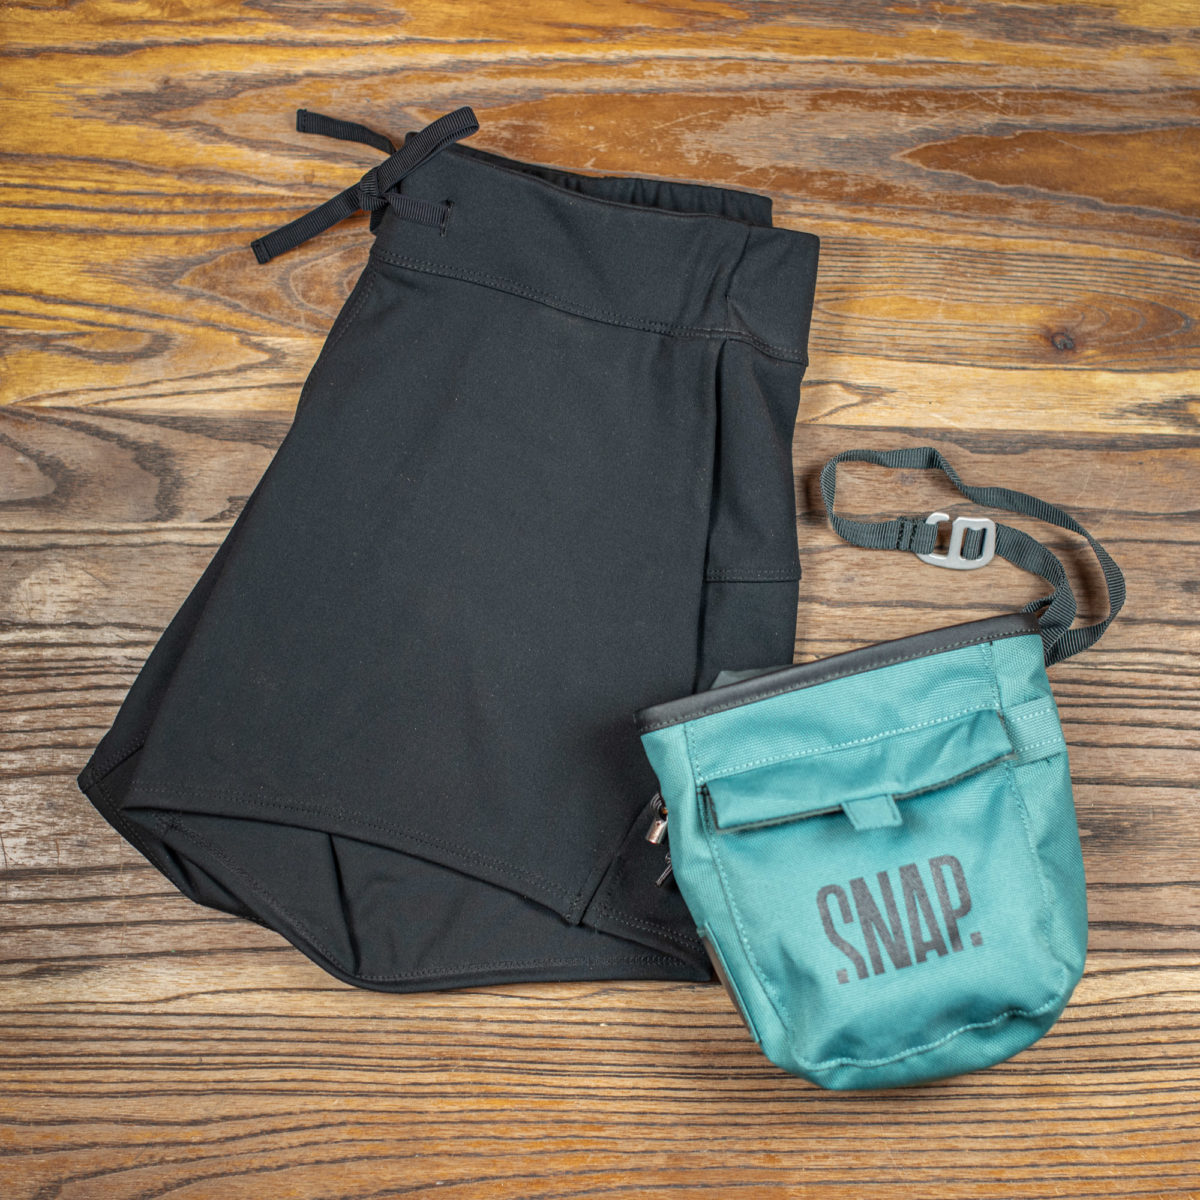 shorts for woman climber